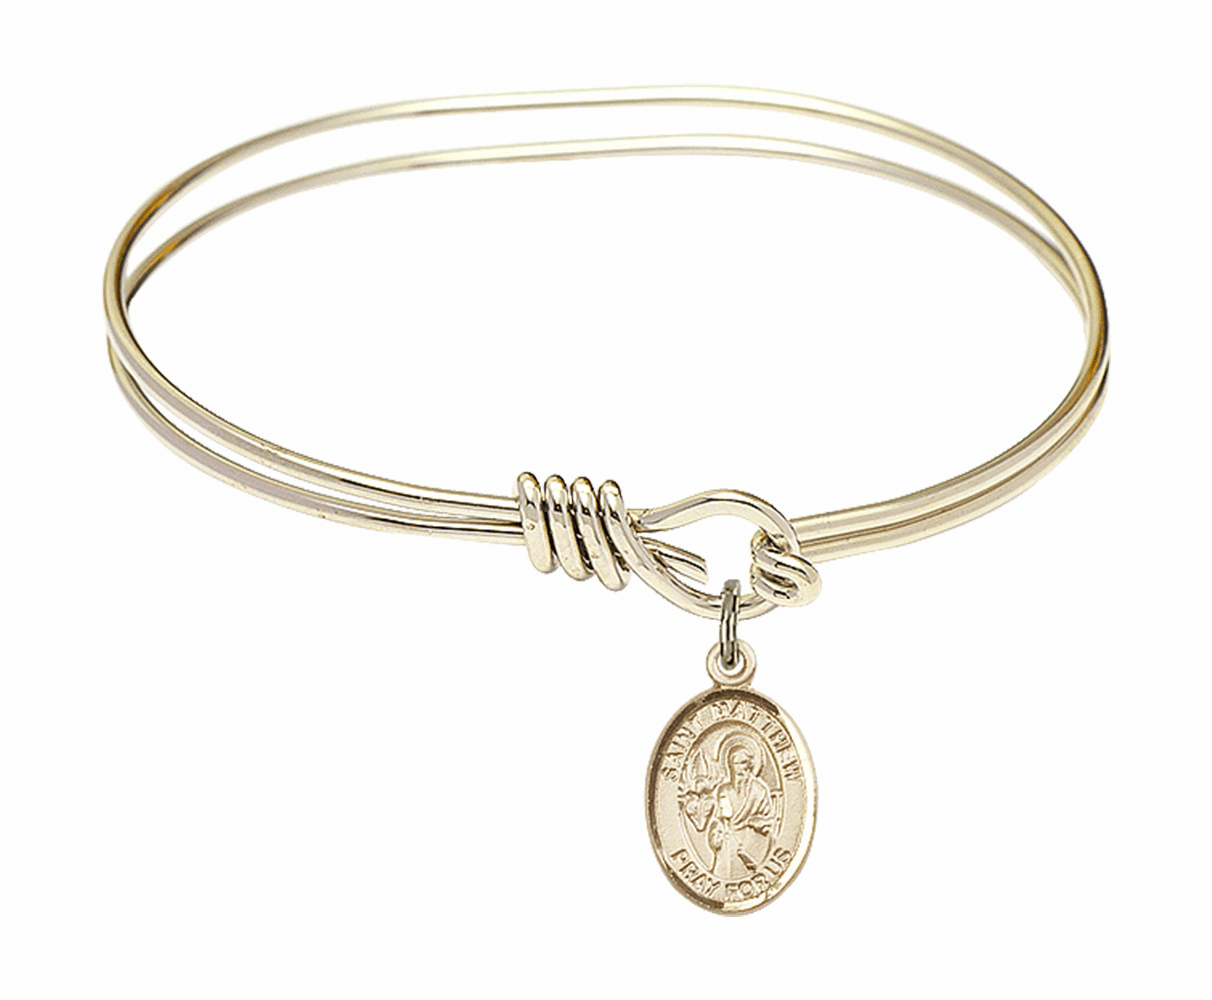 Round Loop St Matthew the Apostle Bangle 14kt Gold-filled Charm Bracelet by Bliss